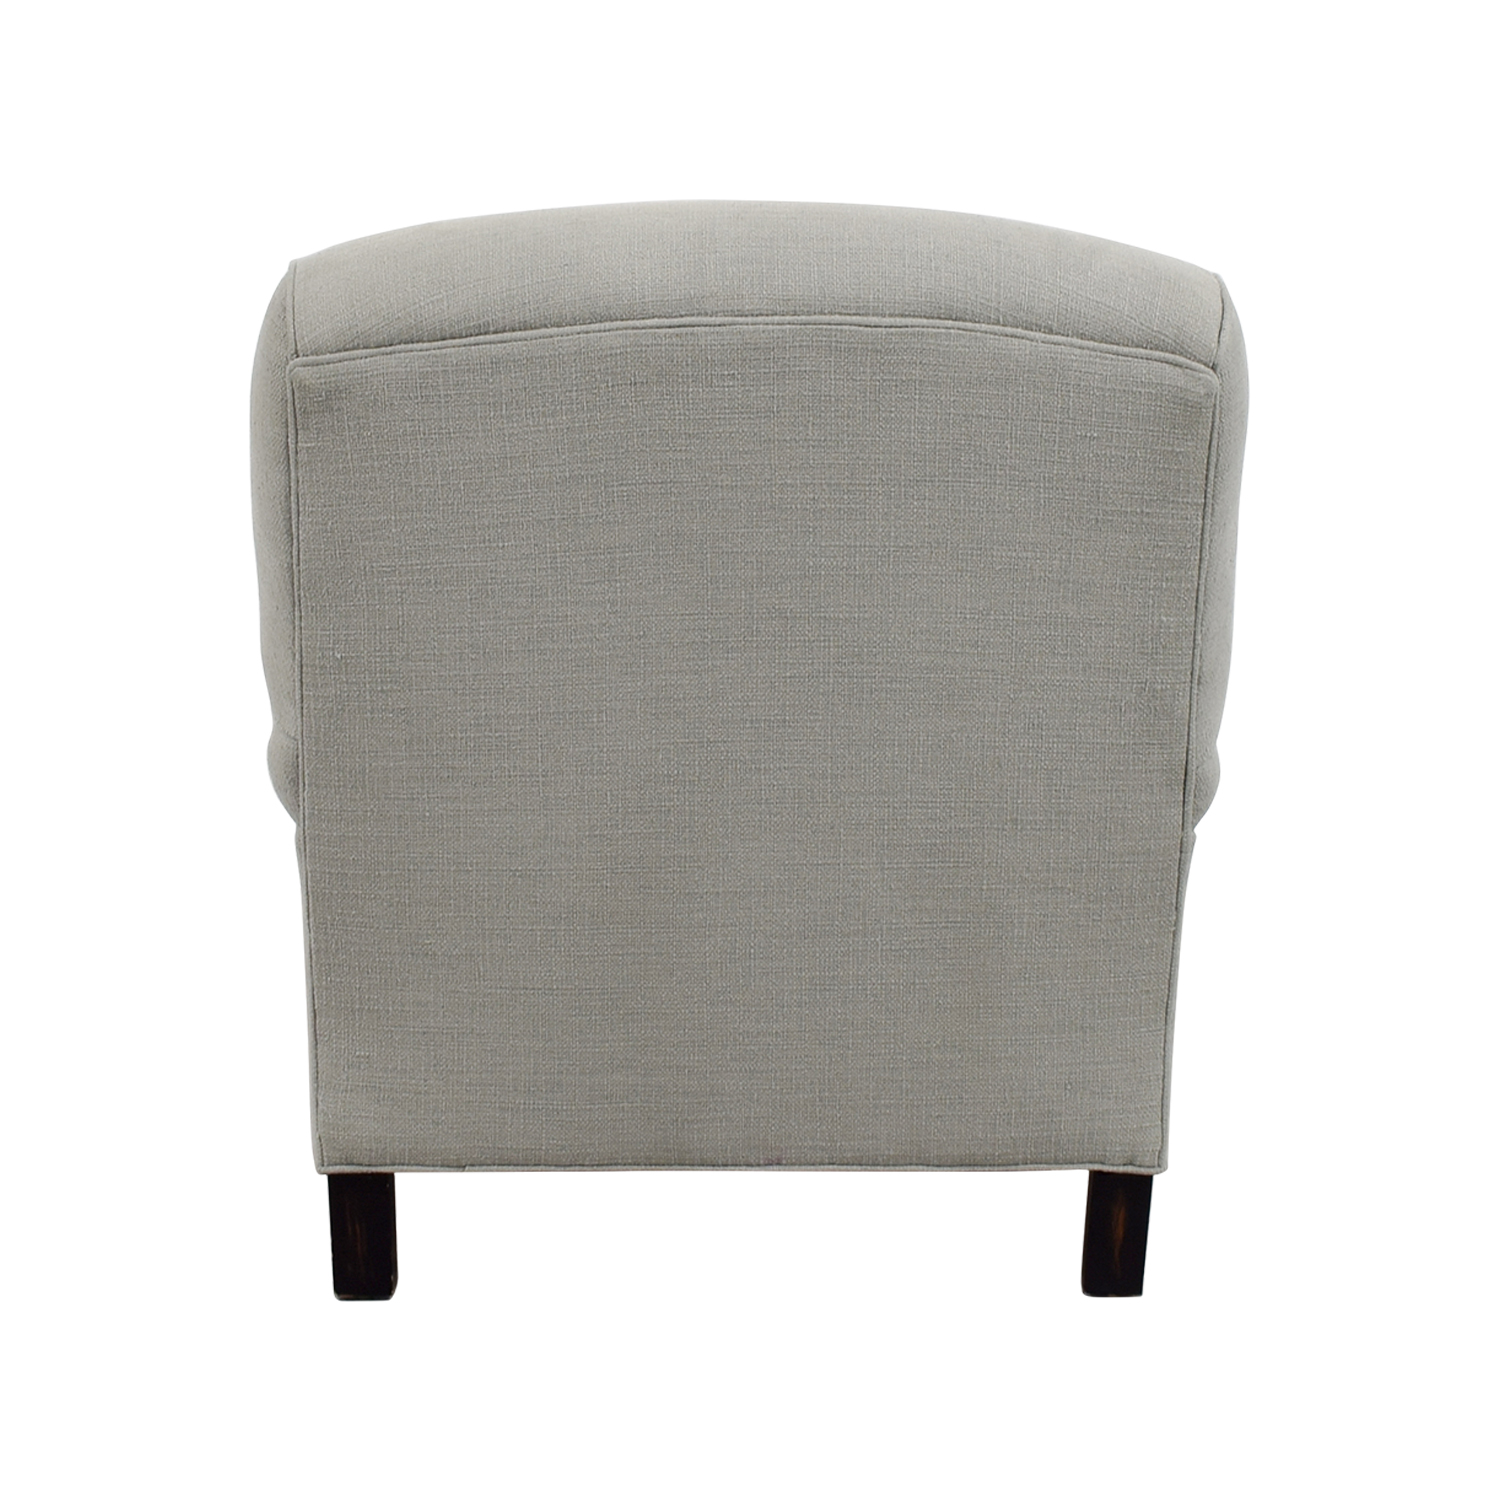 buy Arhaus Arhaus Perry Upholstered Thelma Sterling Accent Chair online